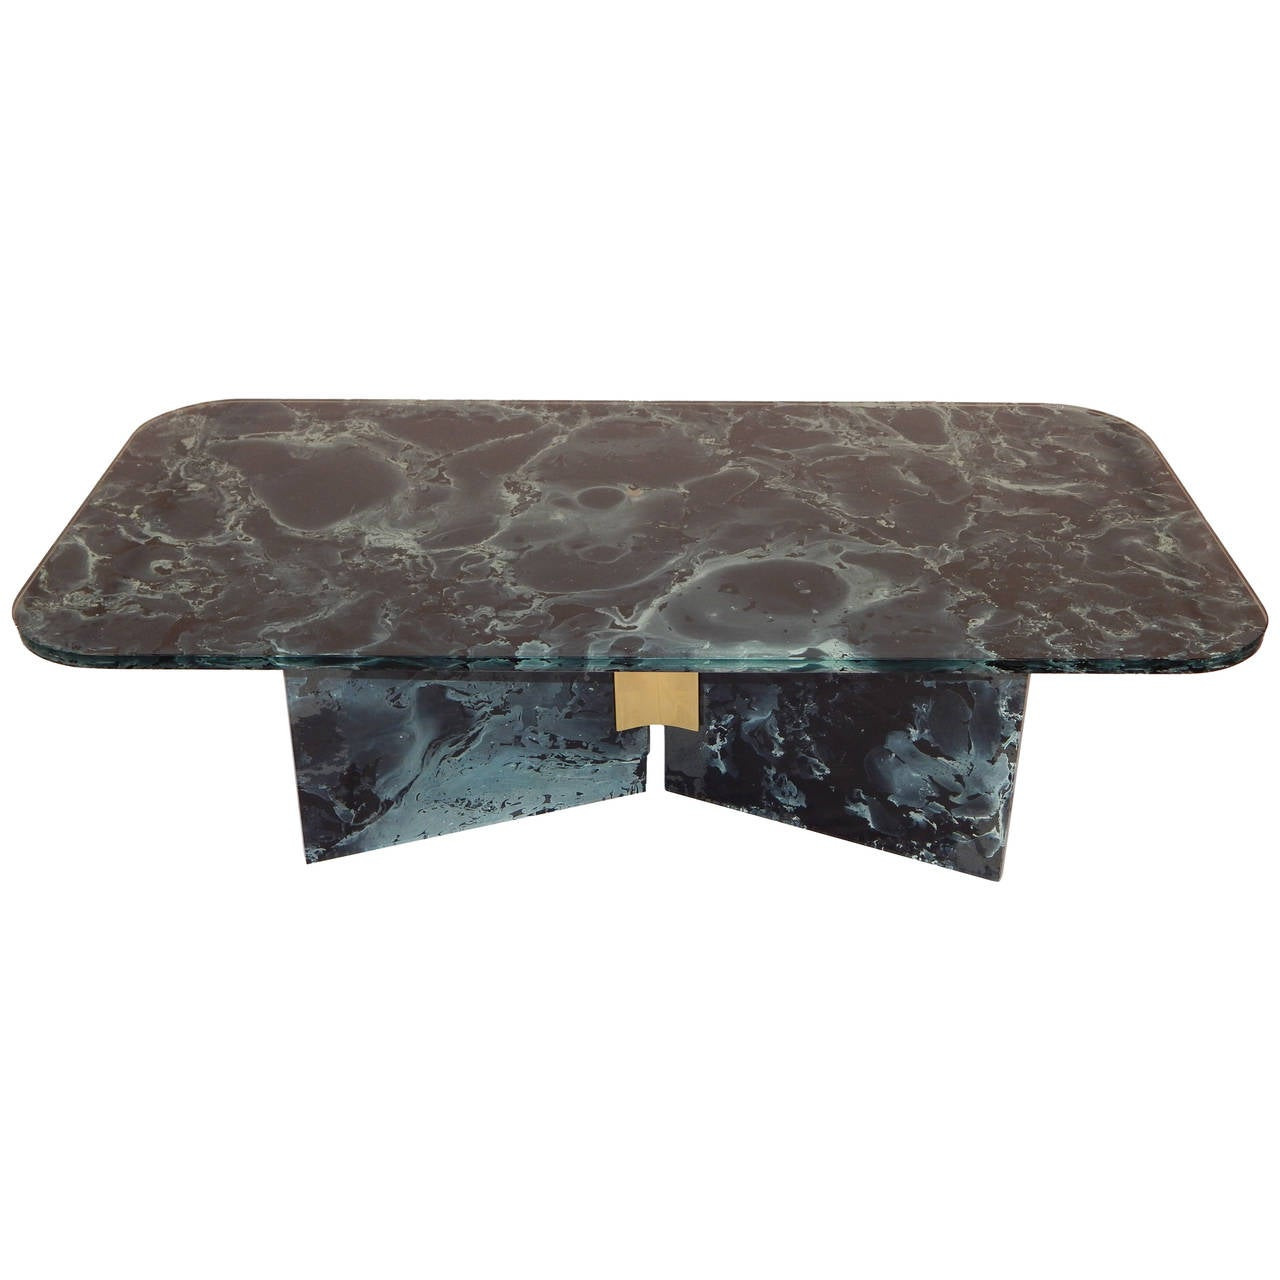 Marbleized glass coffee or cocktail table for sale at 1stdibs for Glass coffee tables for sale